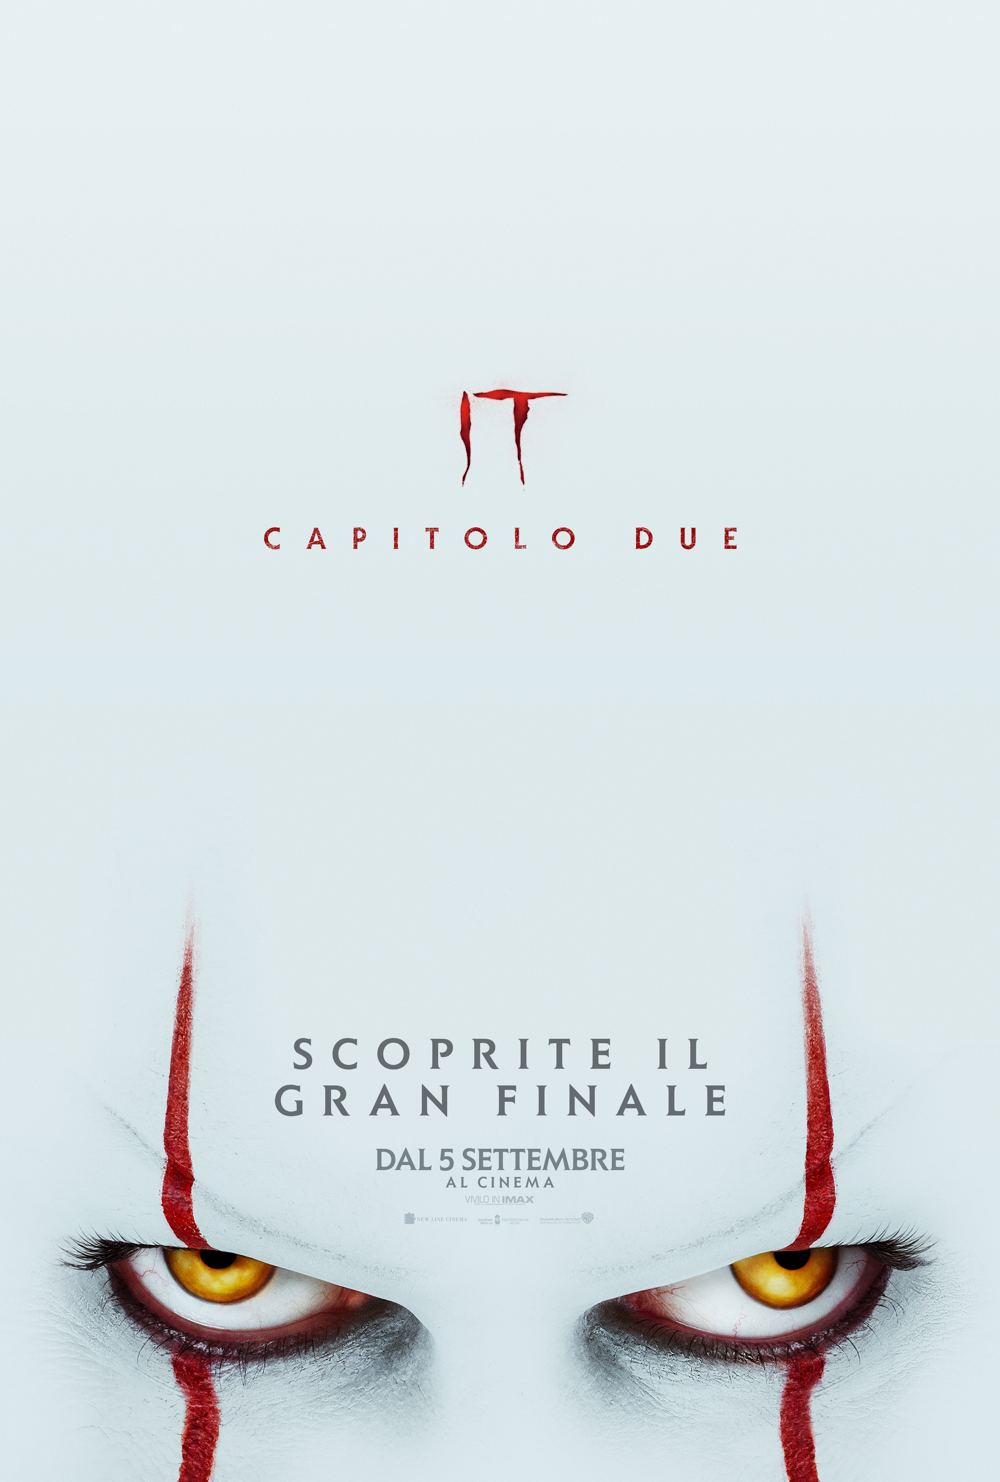 IT Capitolo due - poster